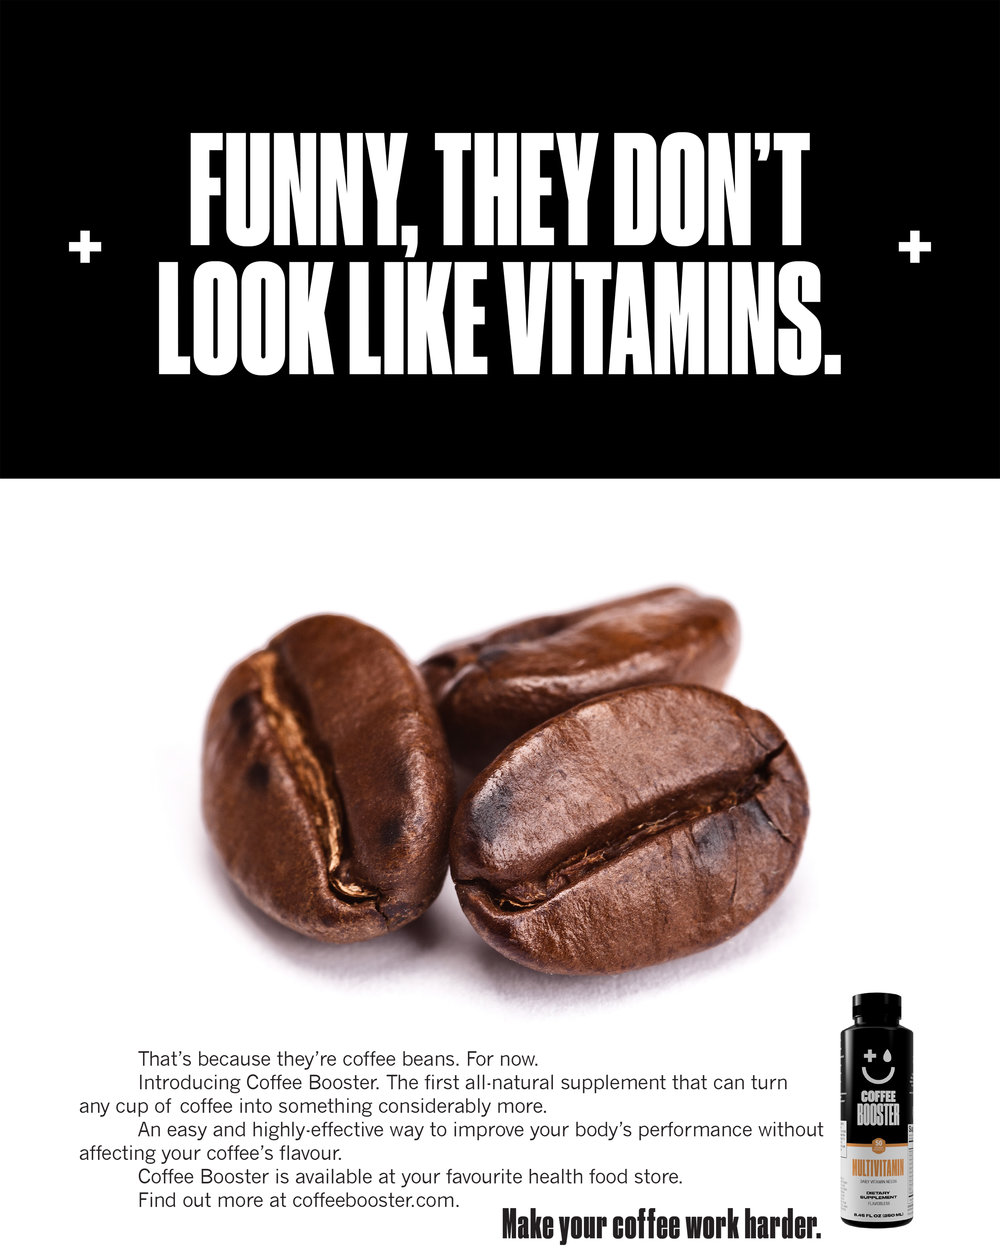 Again, wrote and art directed this campaign for Coffee Boosters. Always best when the ideas come out of the product benefit.